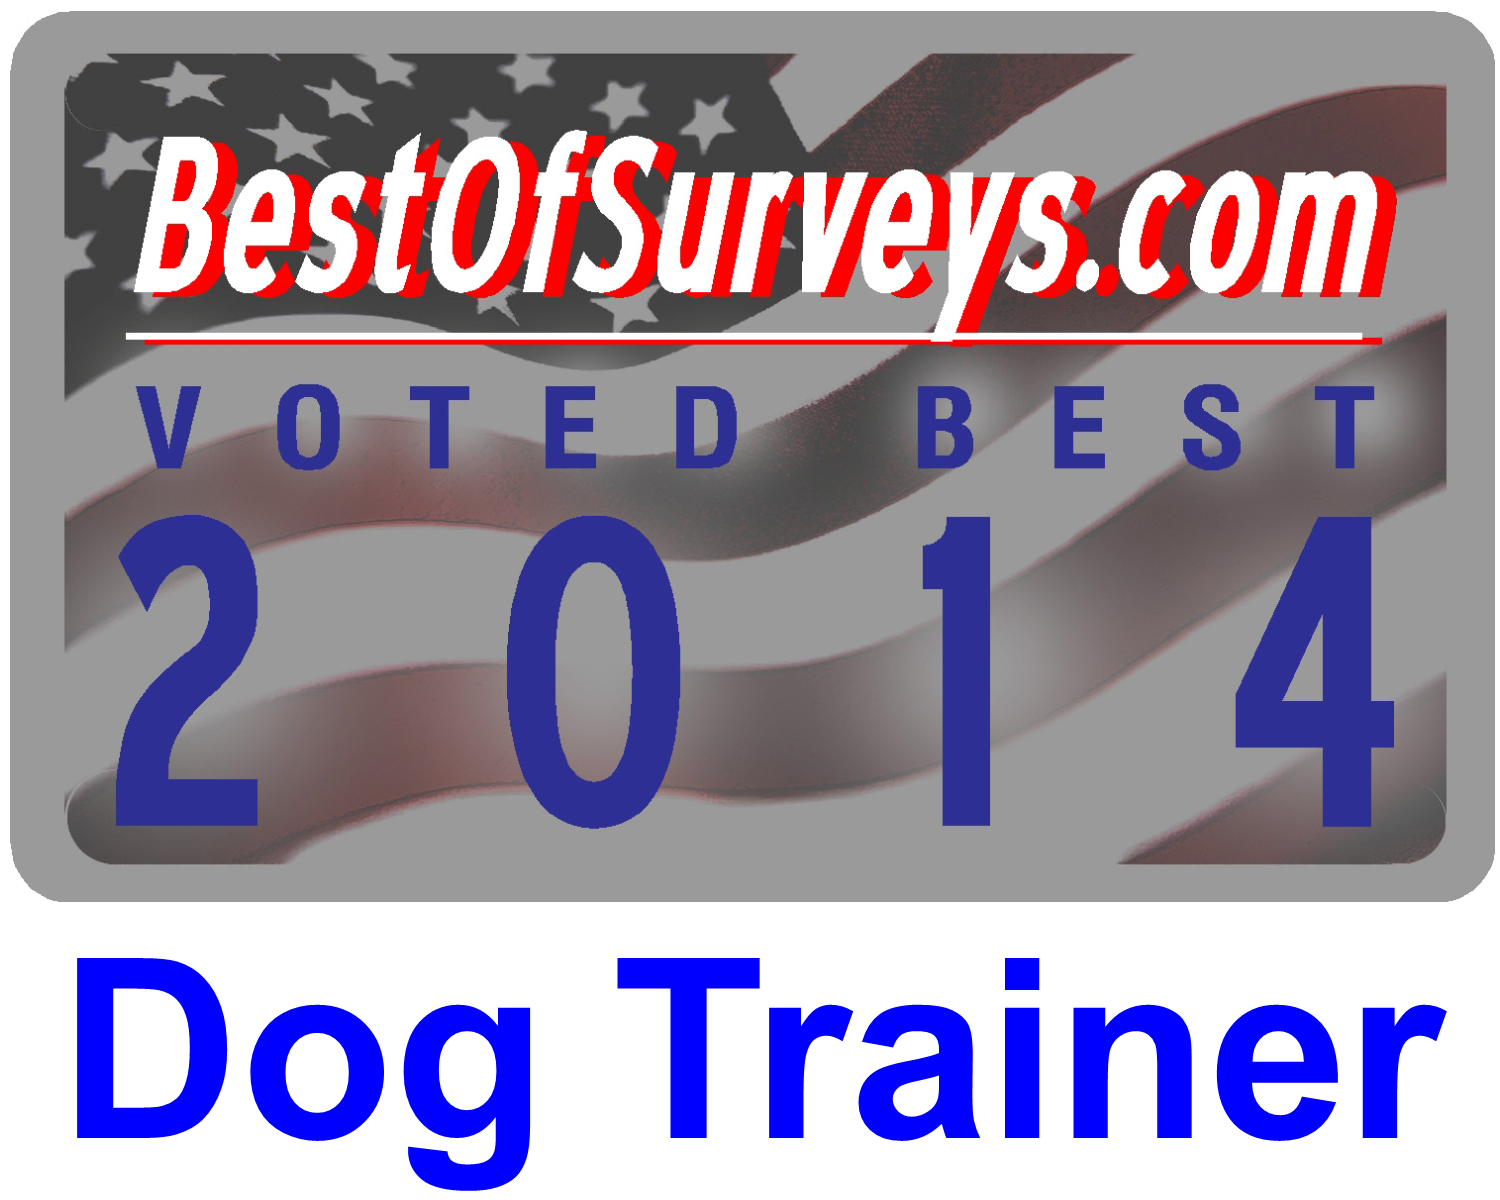 gaks-best dog trainer-2014-1